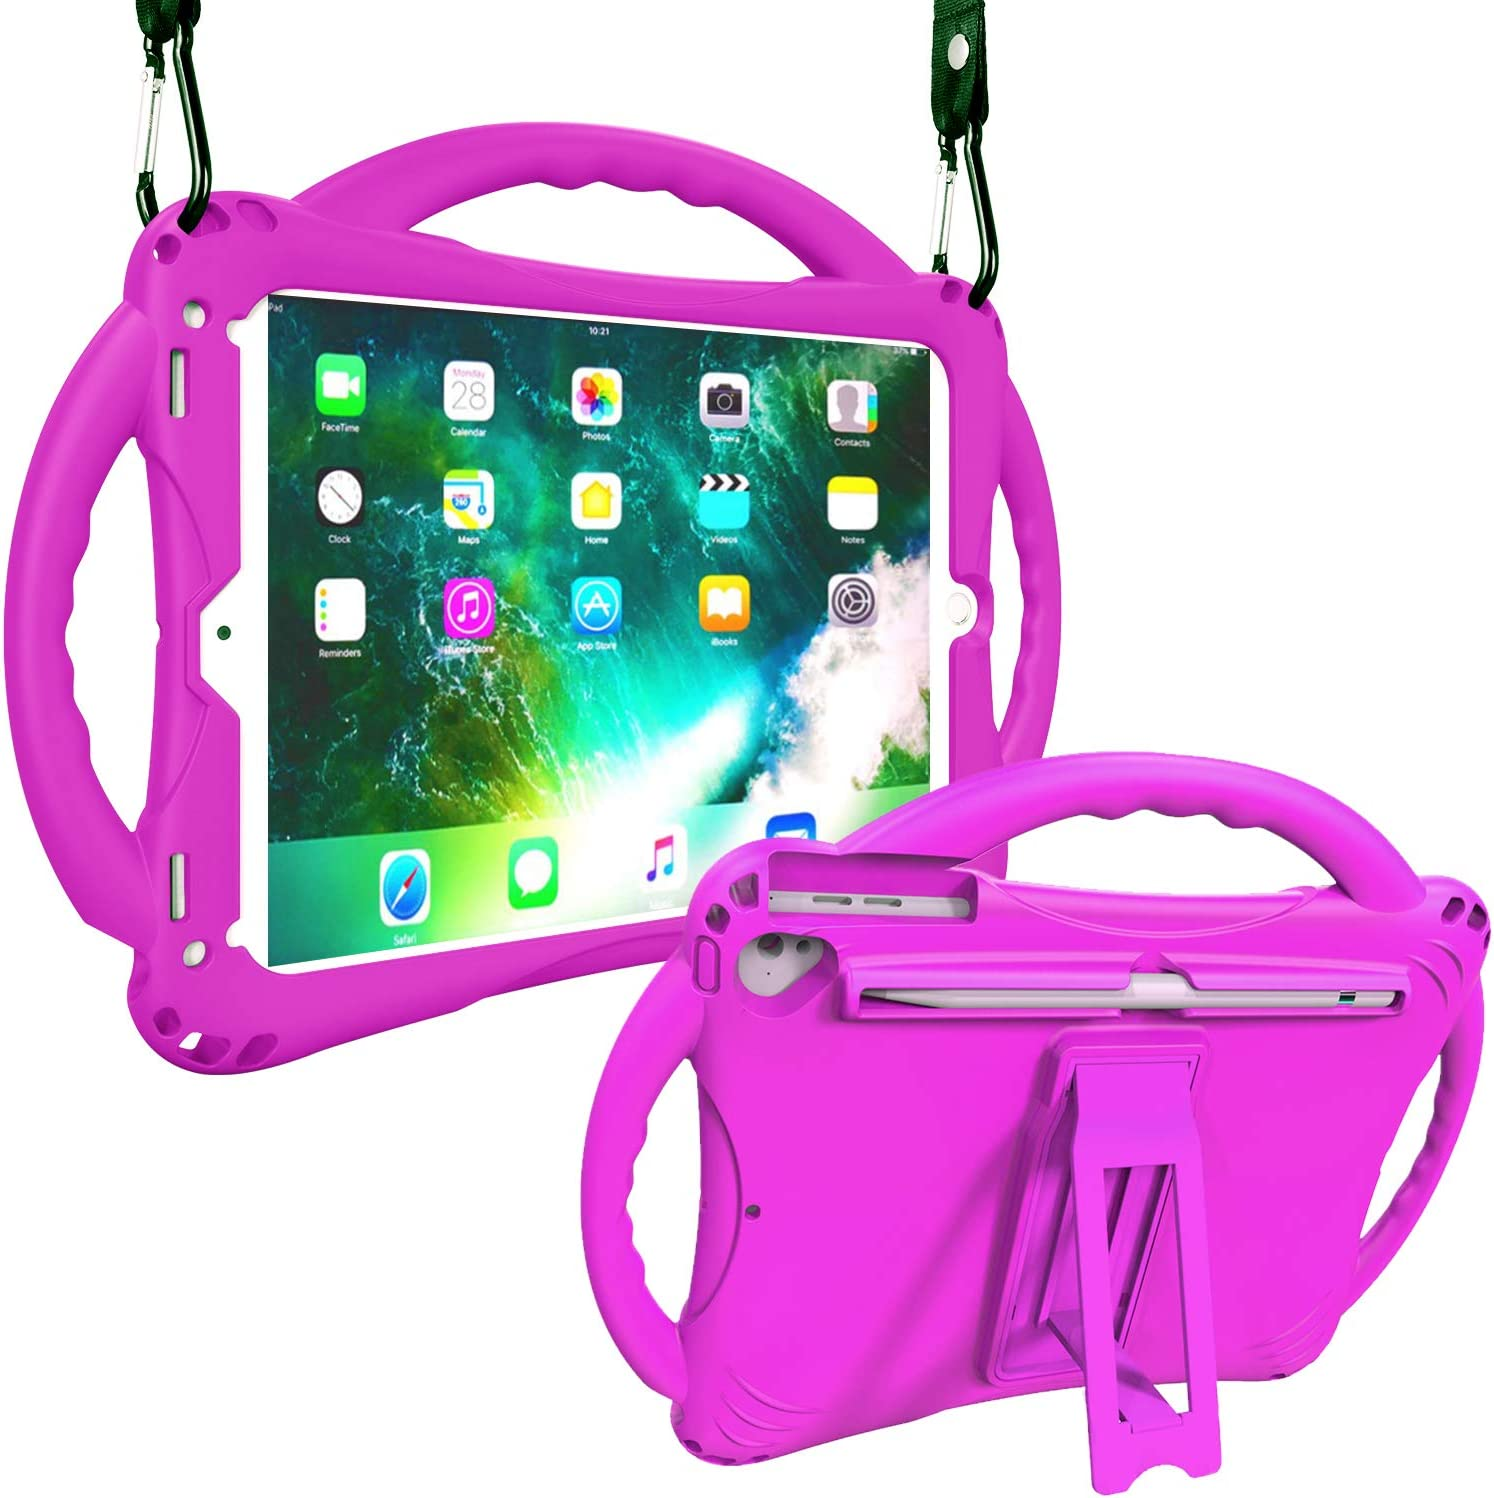 Adocham New iPad 9.7 Inch 6th/5th Generation 2018/2017 Case with Apple Pencil Holder, Lightweight and Shockproof Case with Kickstand for 6th/5th Gen, also Fits for iPad Pro 9.7, iPad Air 1/2(Purple)